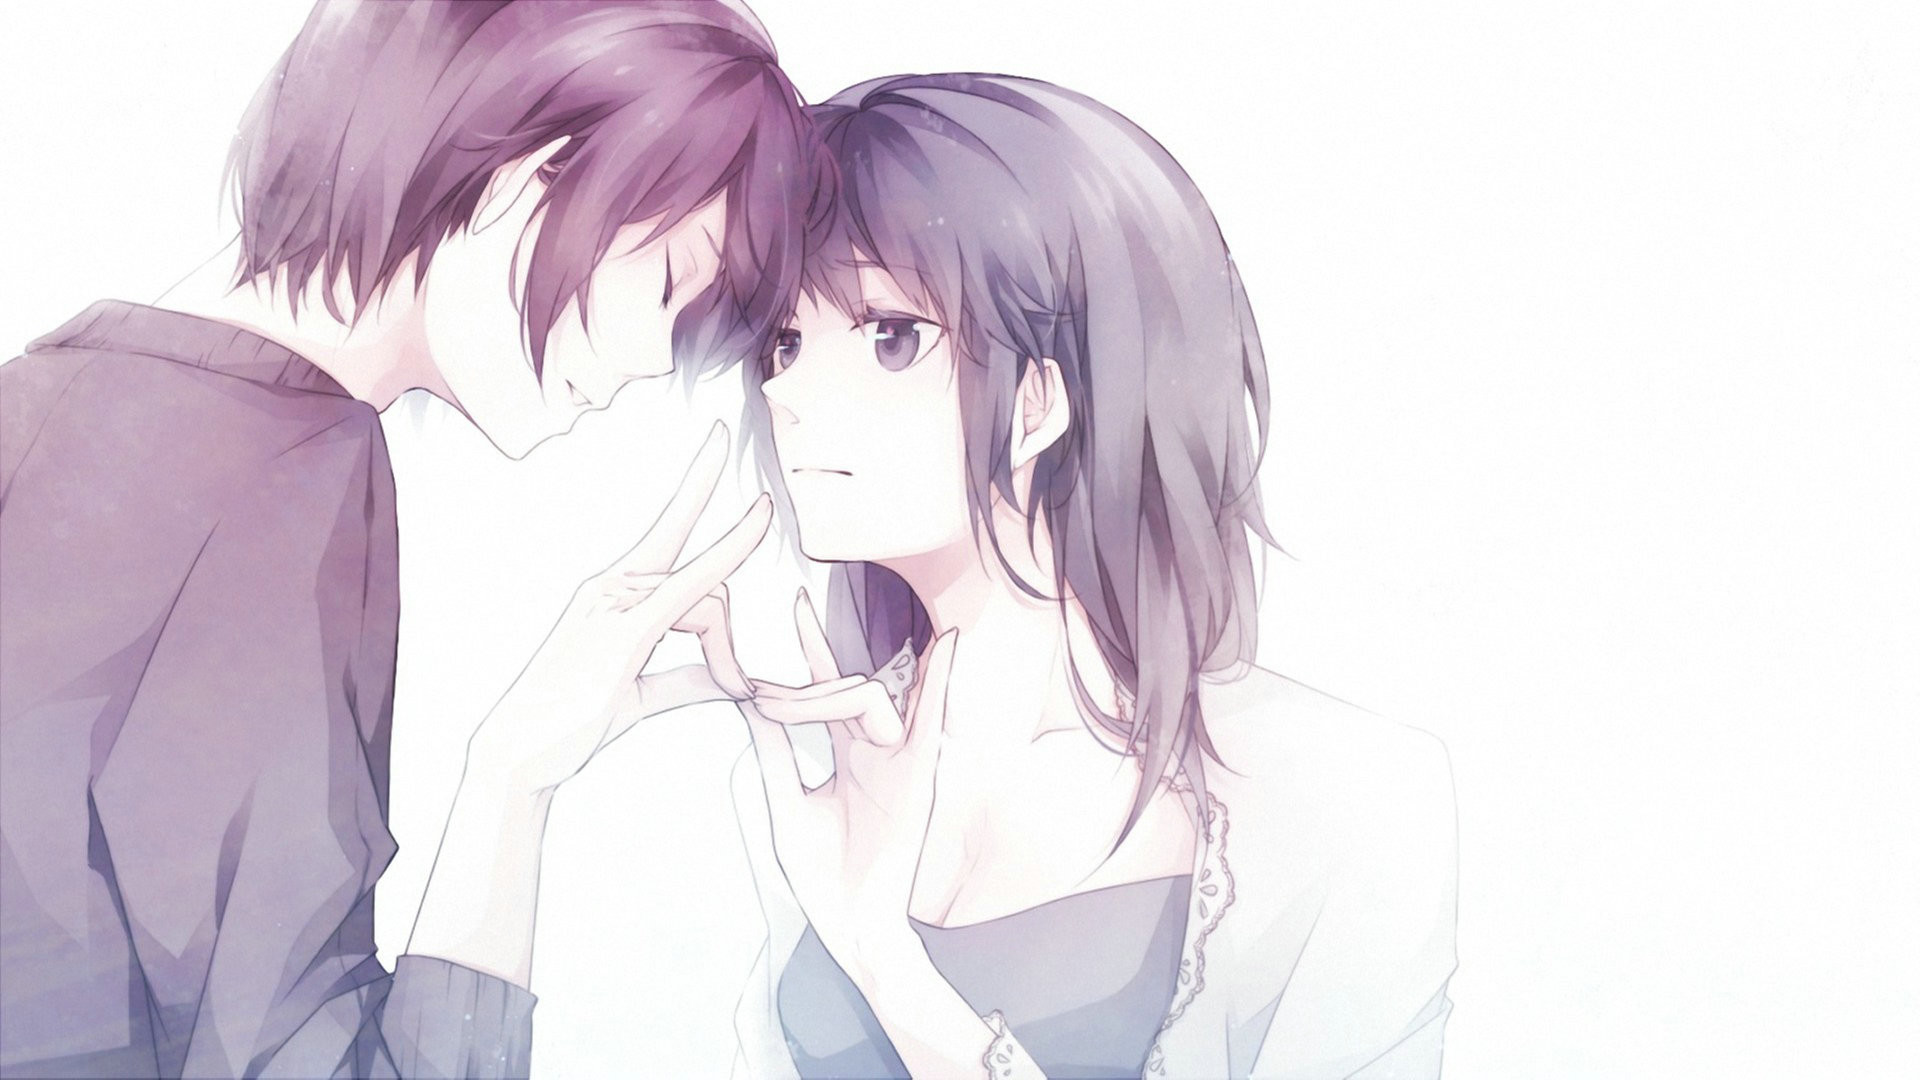 Couples anime wallpapers wallpapertag - Cute anime couple wallpaper ...